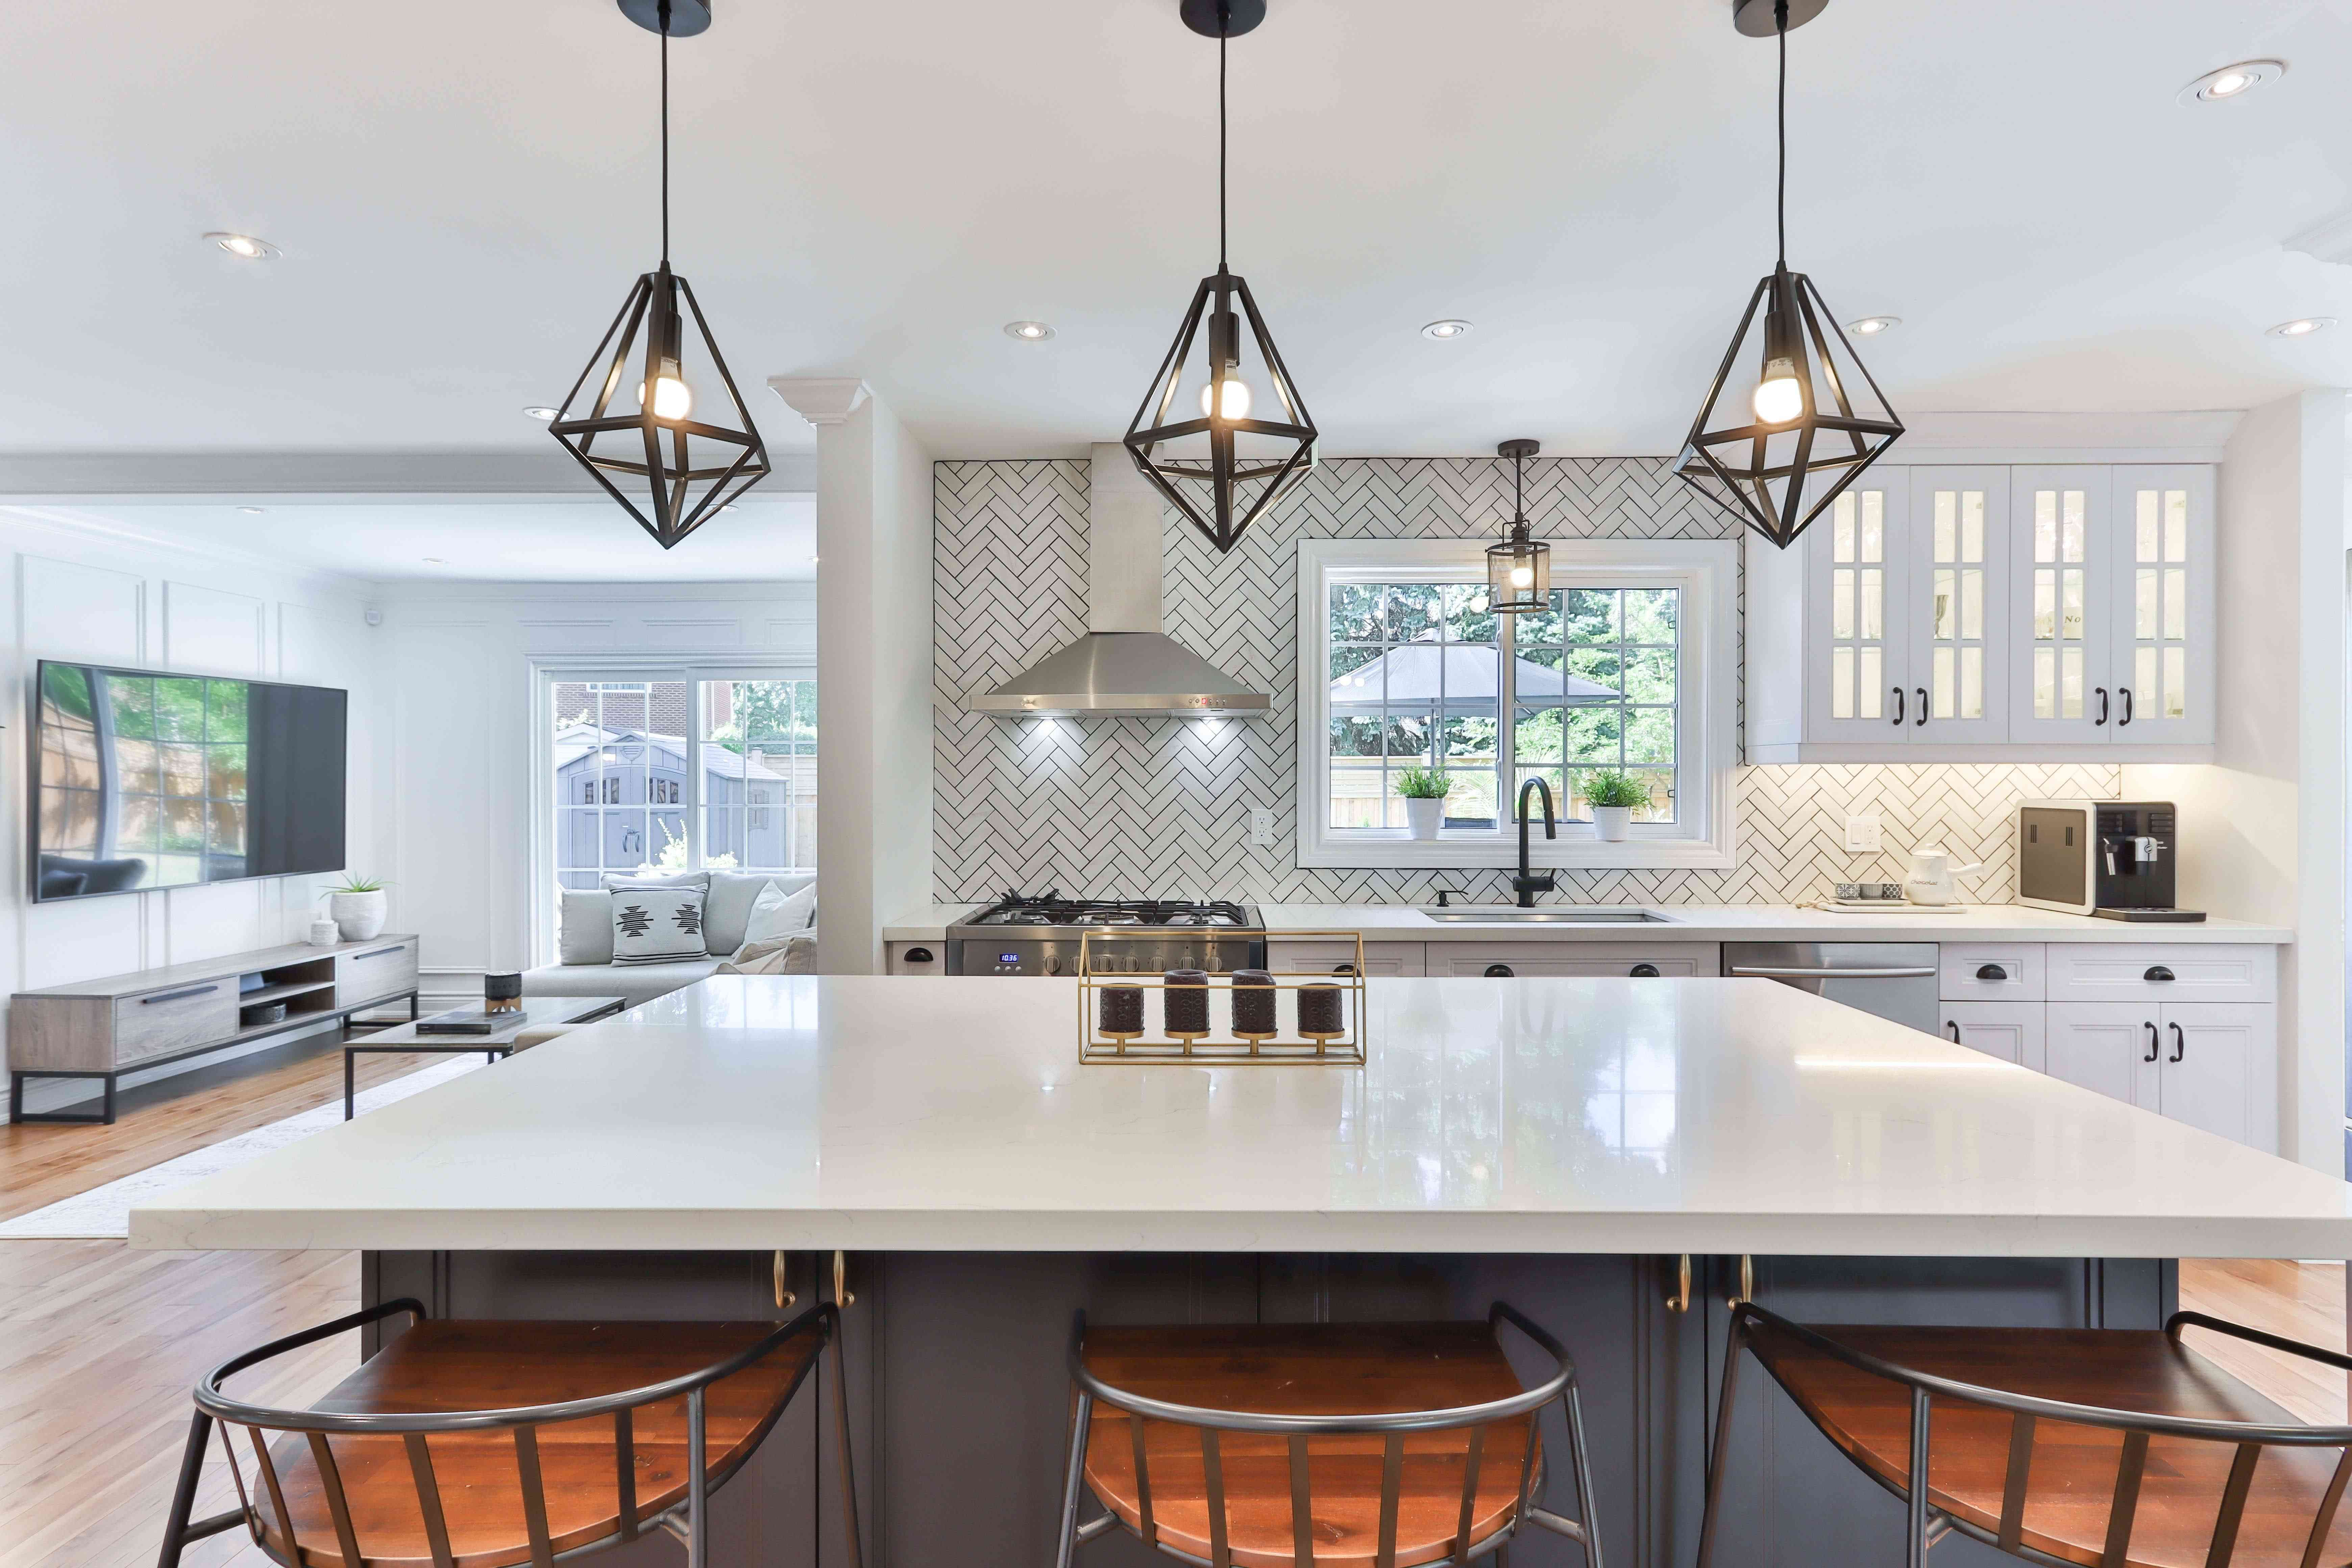 artful pendant lights in the kitchen